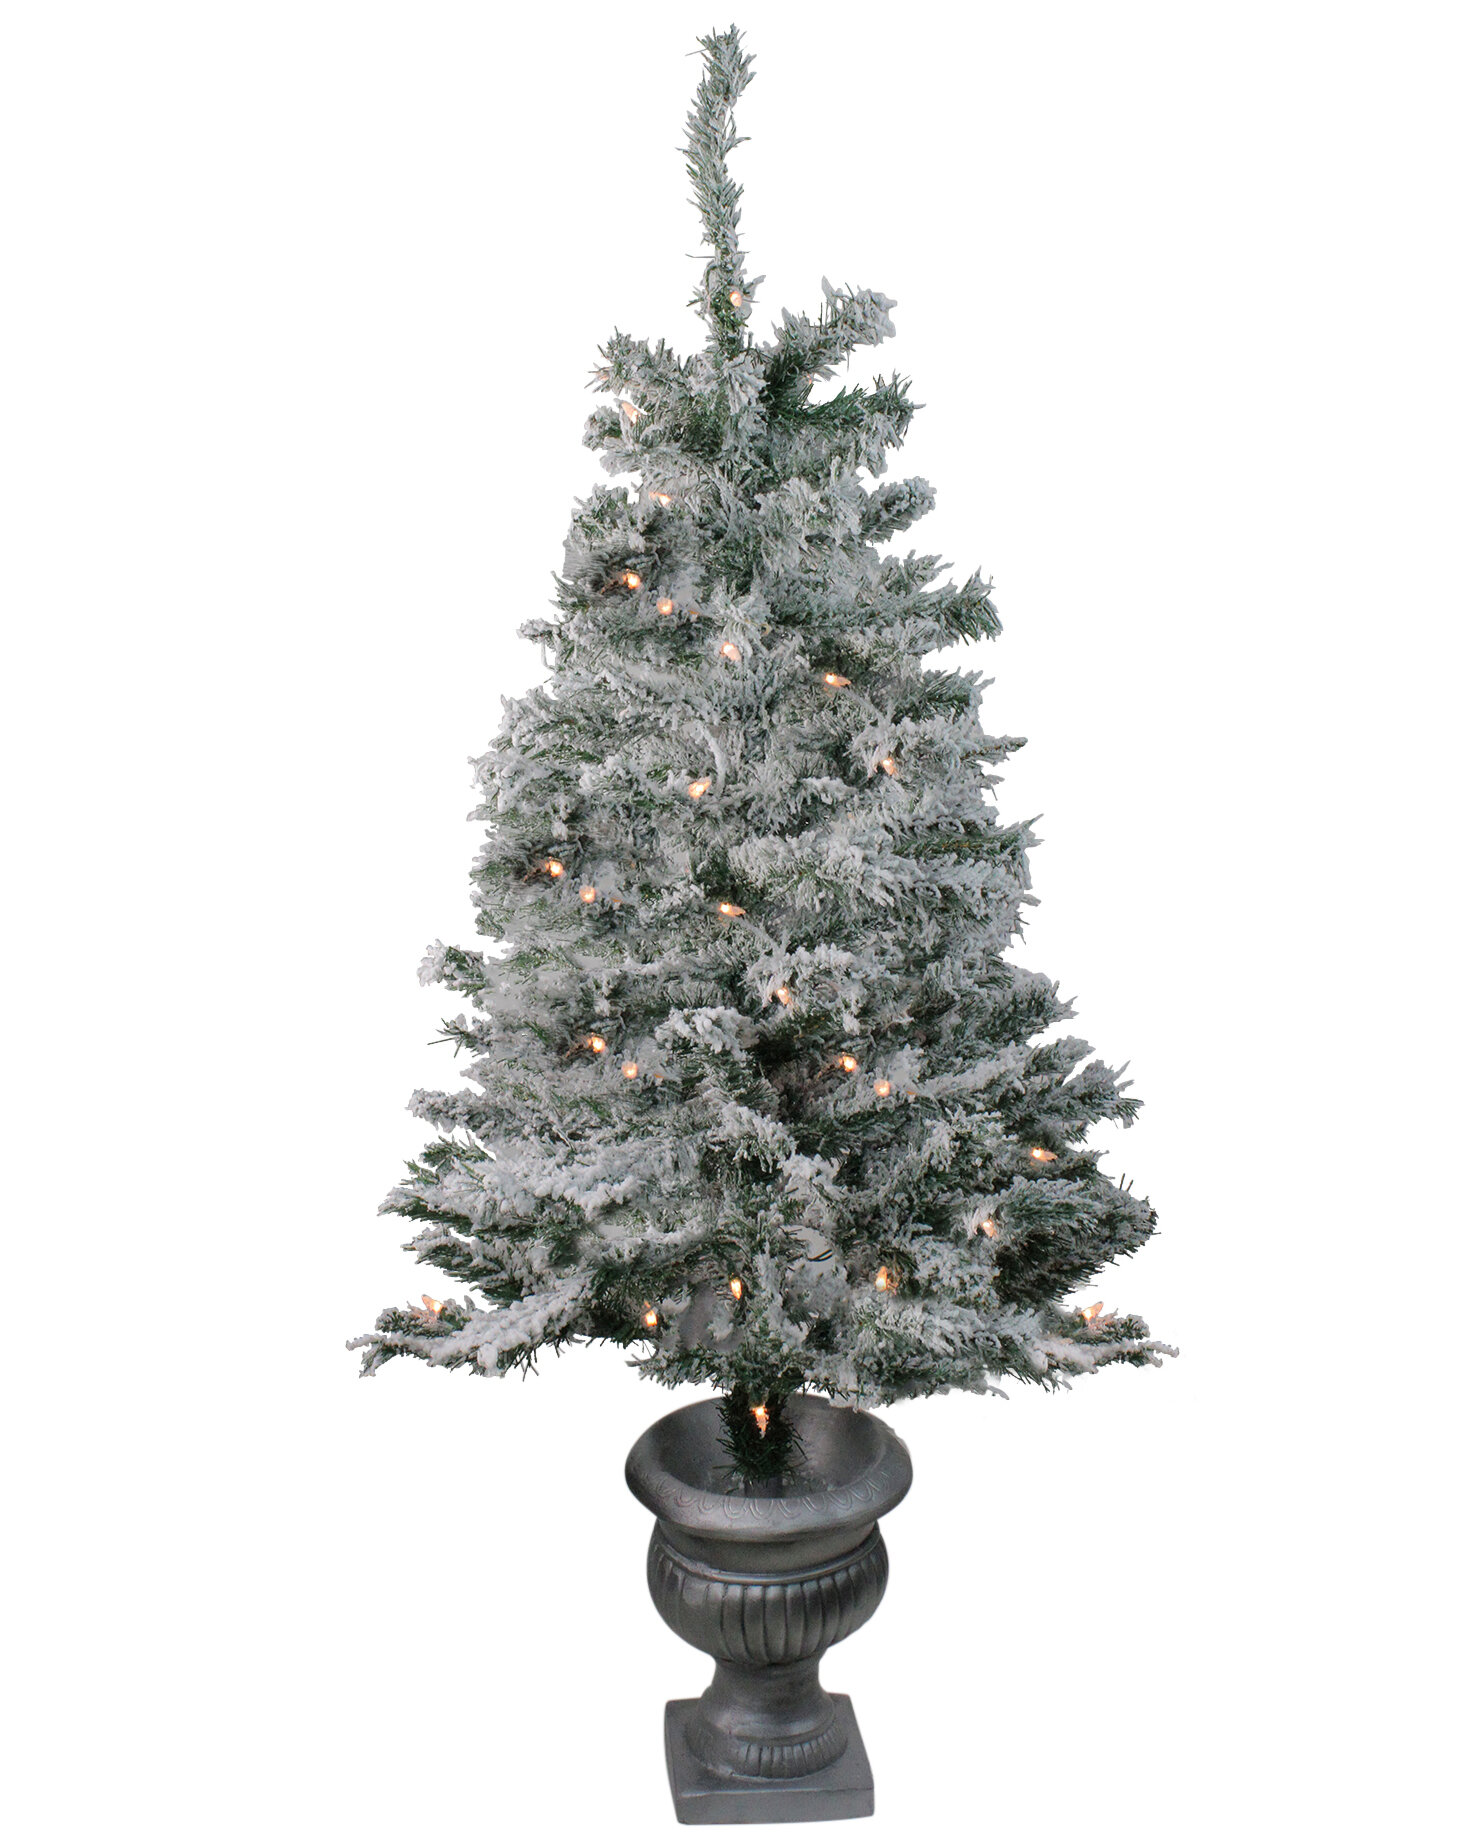 Flocked Pre Lit Christmas Tree.Pre Lit Potted Flocked 3 5 Gray Pine Artificial Christmas Tree With 35 Clear White Lights